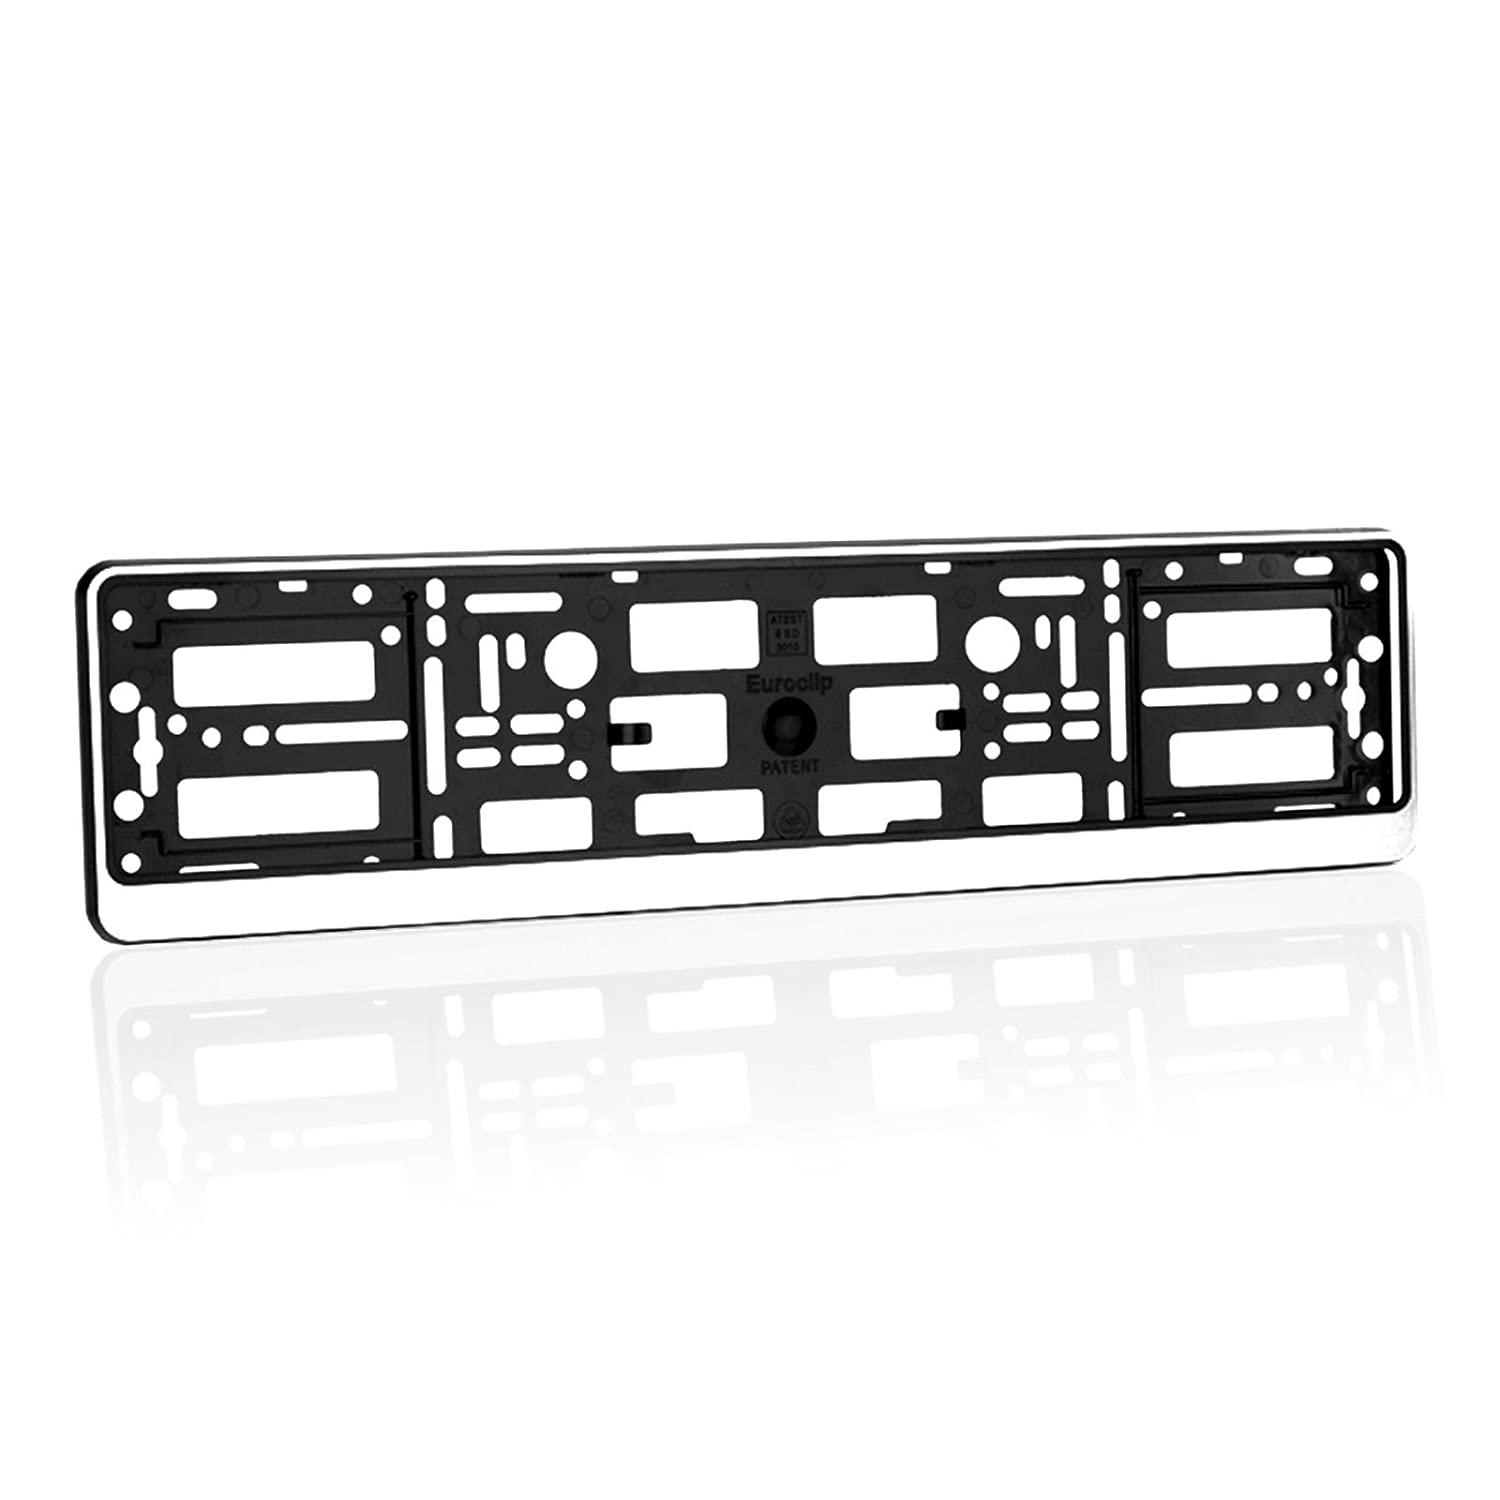 Chrome 2 x Number Plate Holders Frames Licence Plate Surrounds for Any Car